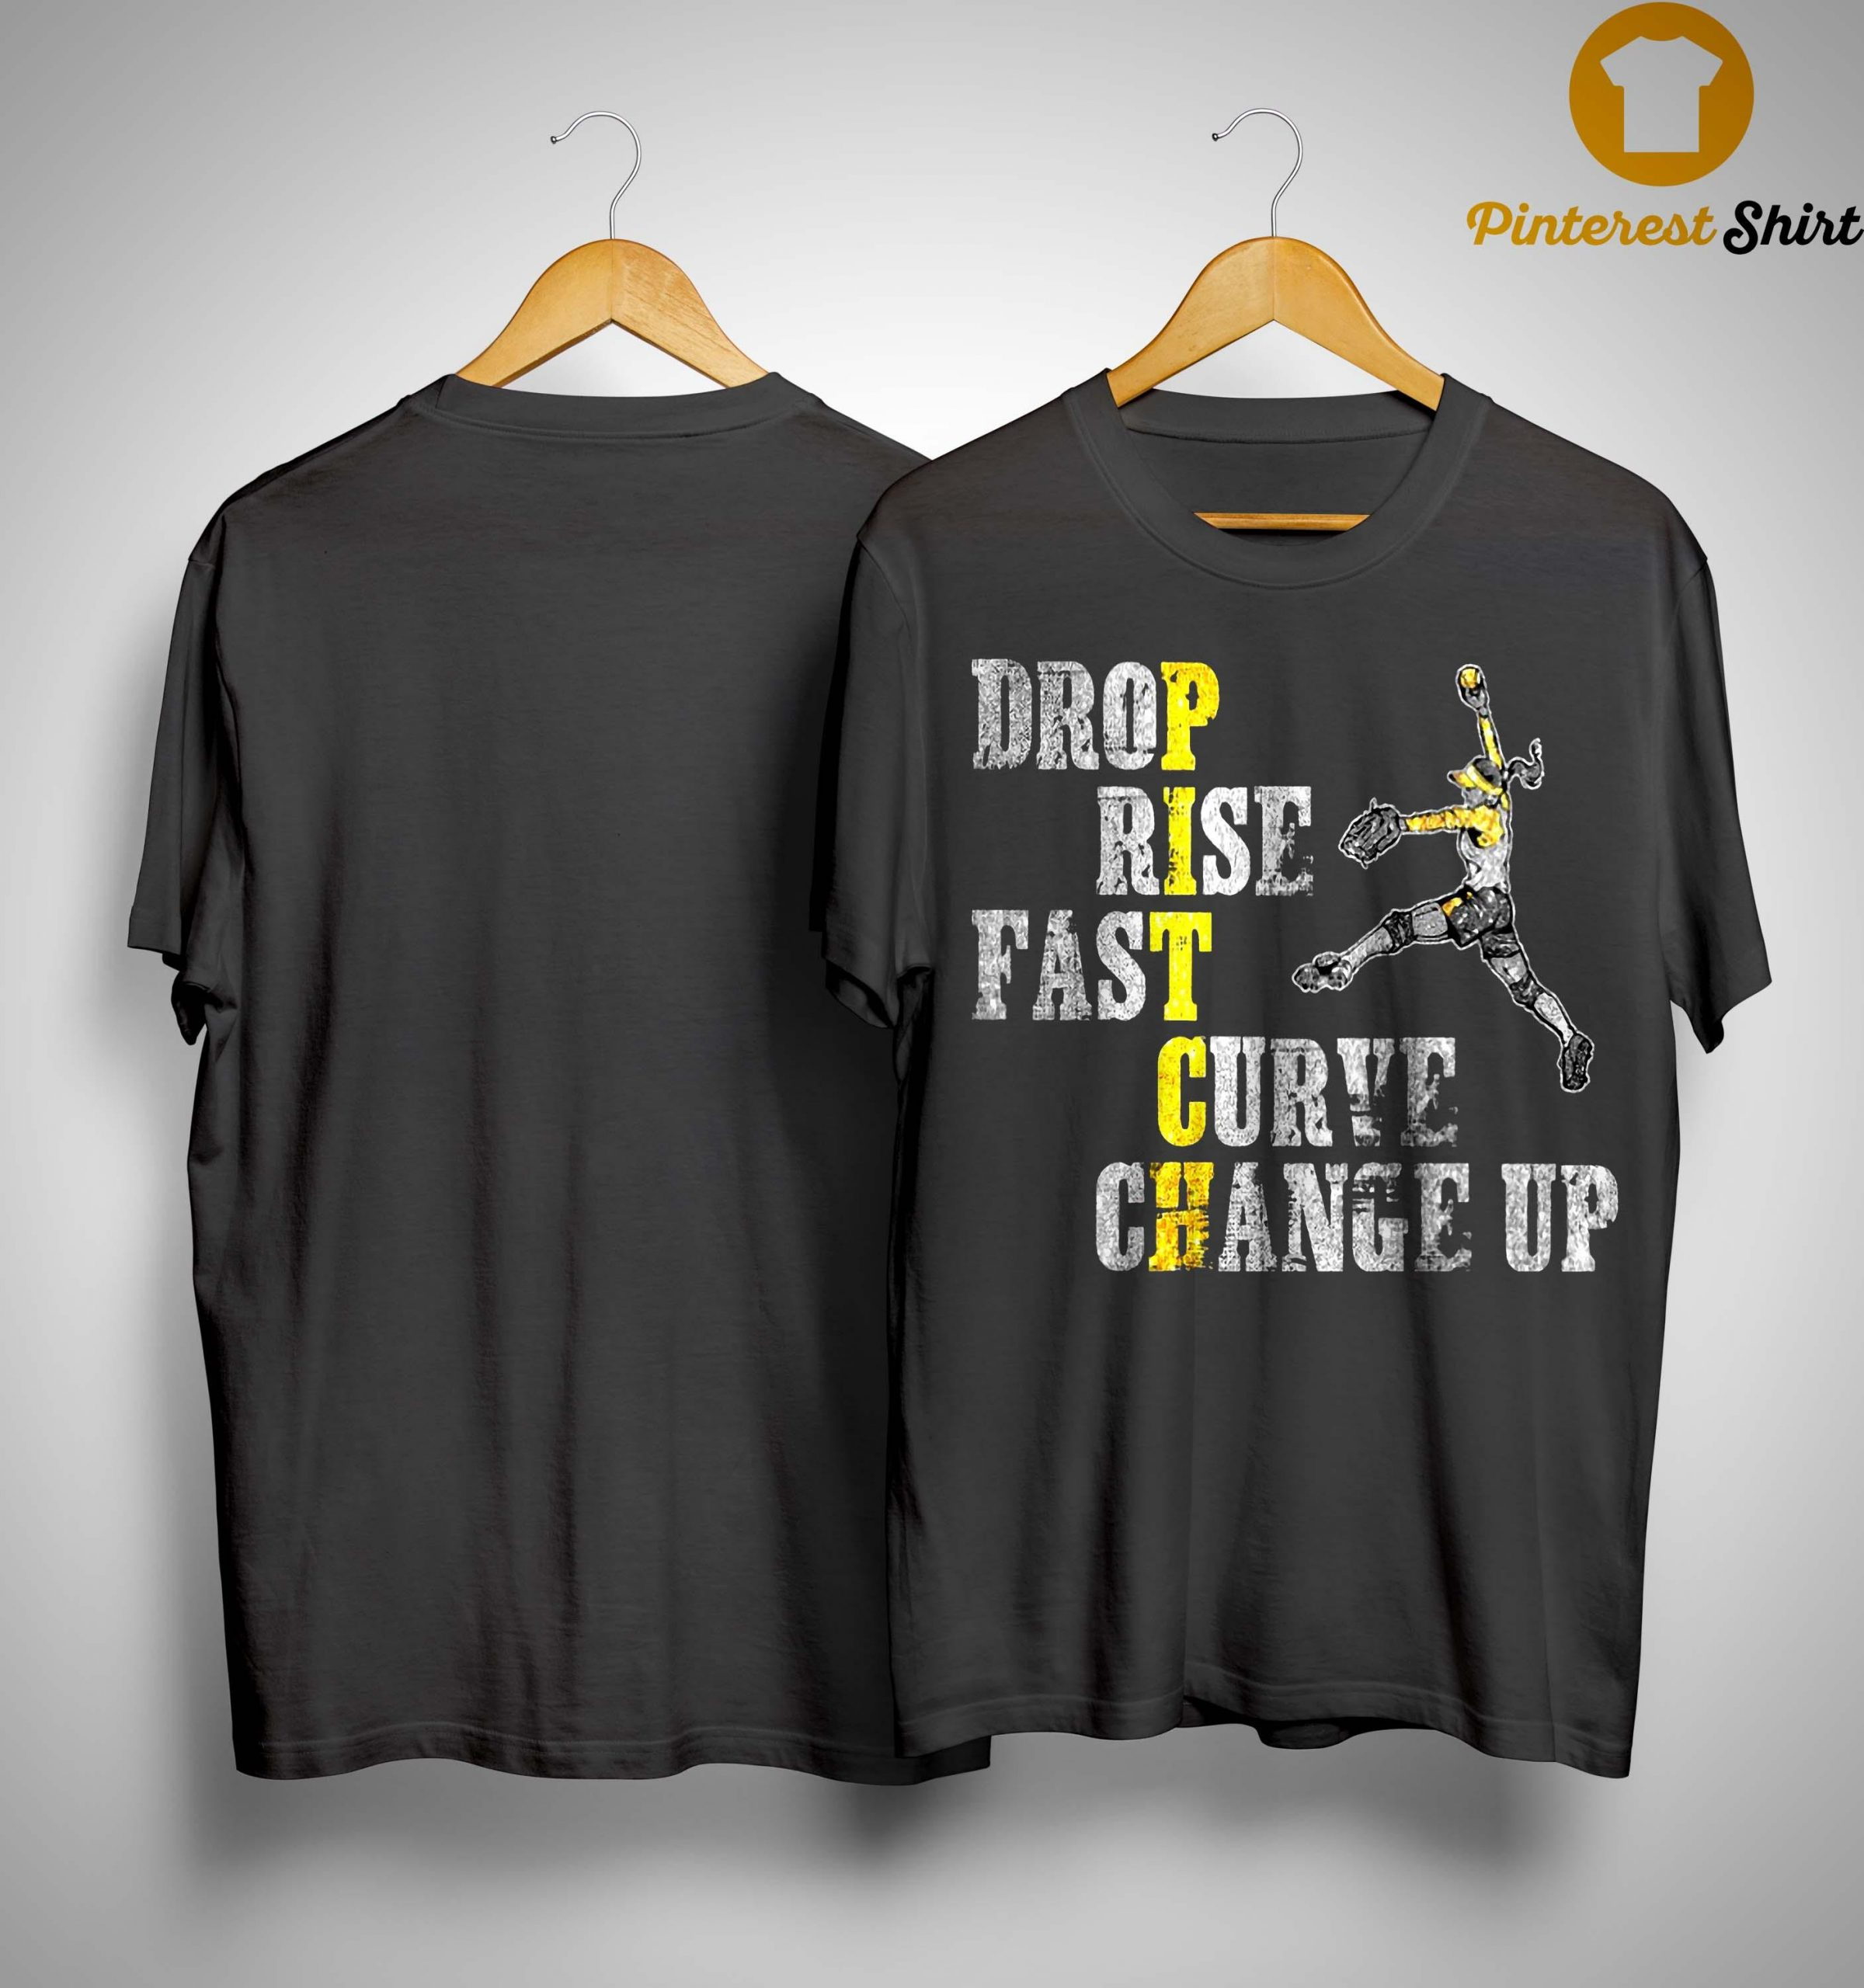 Pitch Drop Rise Fast Curve Change Up Shirt